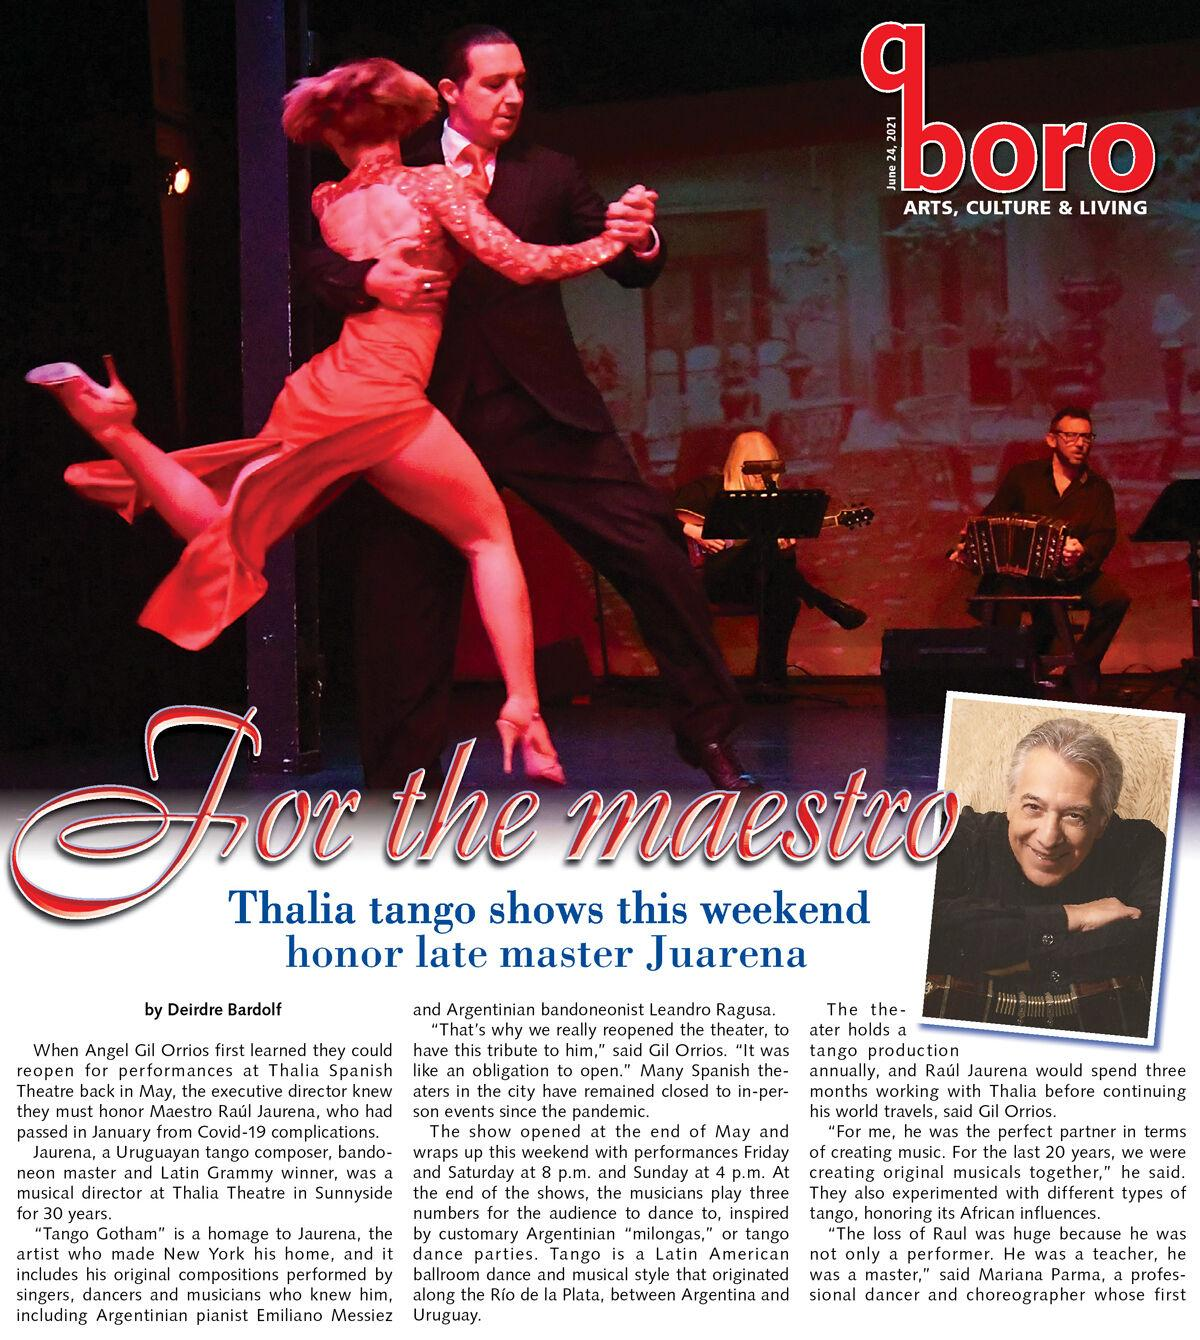 The passion of tango, in a powerful homage 1